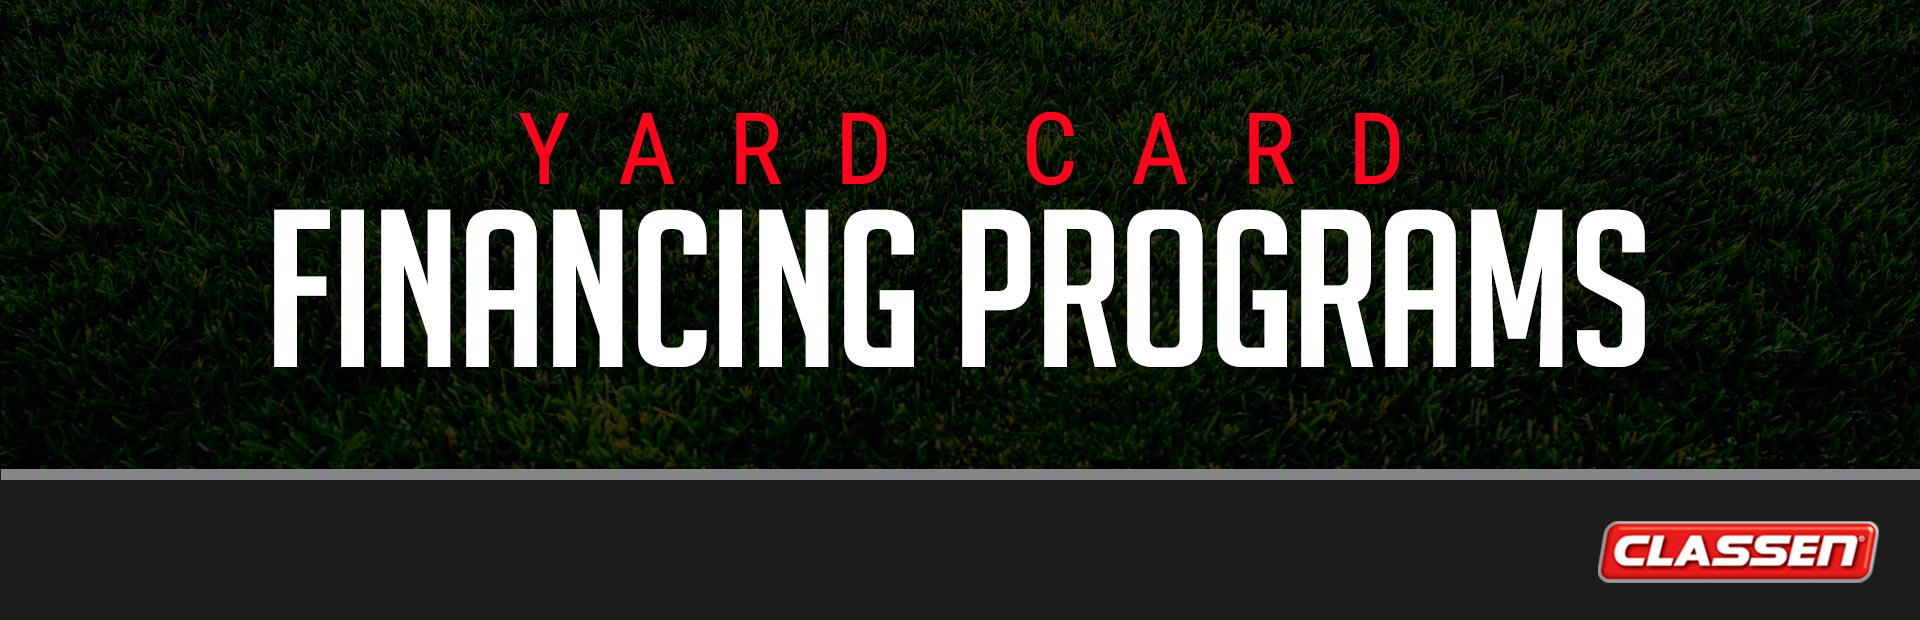 Classen: Yard Card Financing Programs